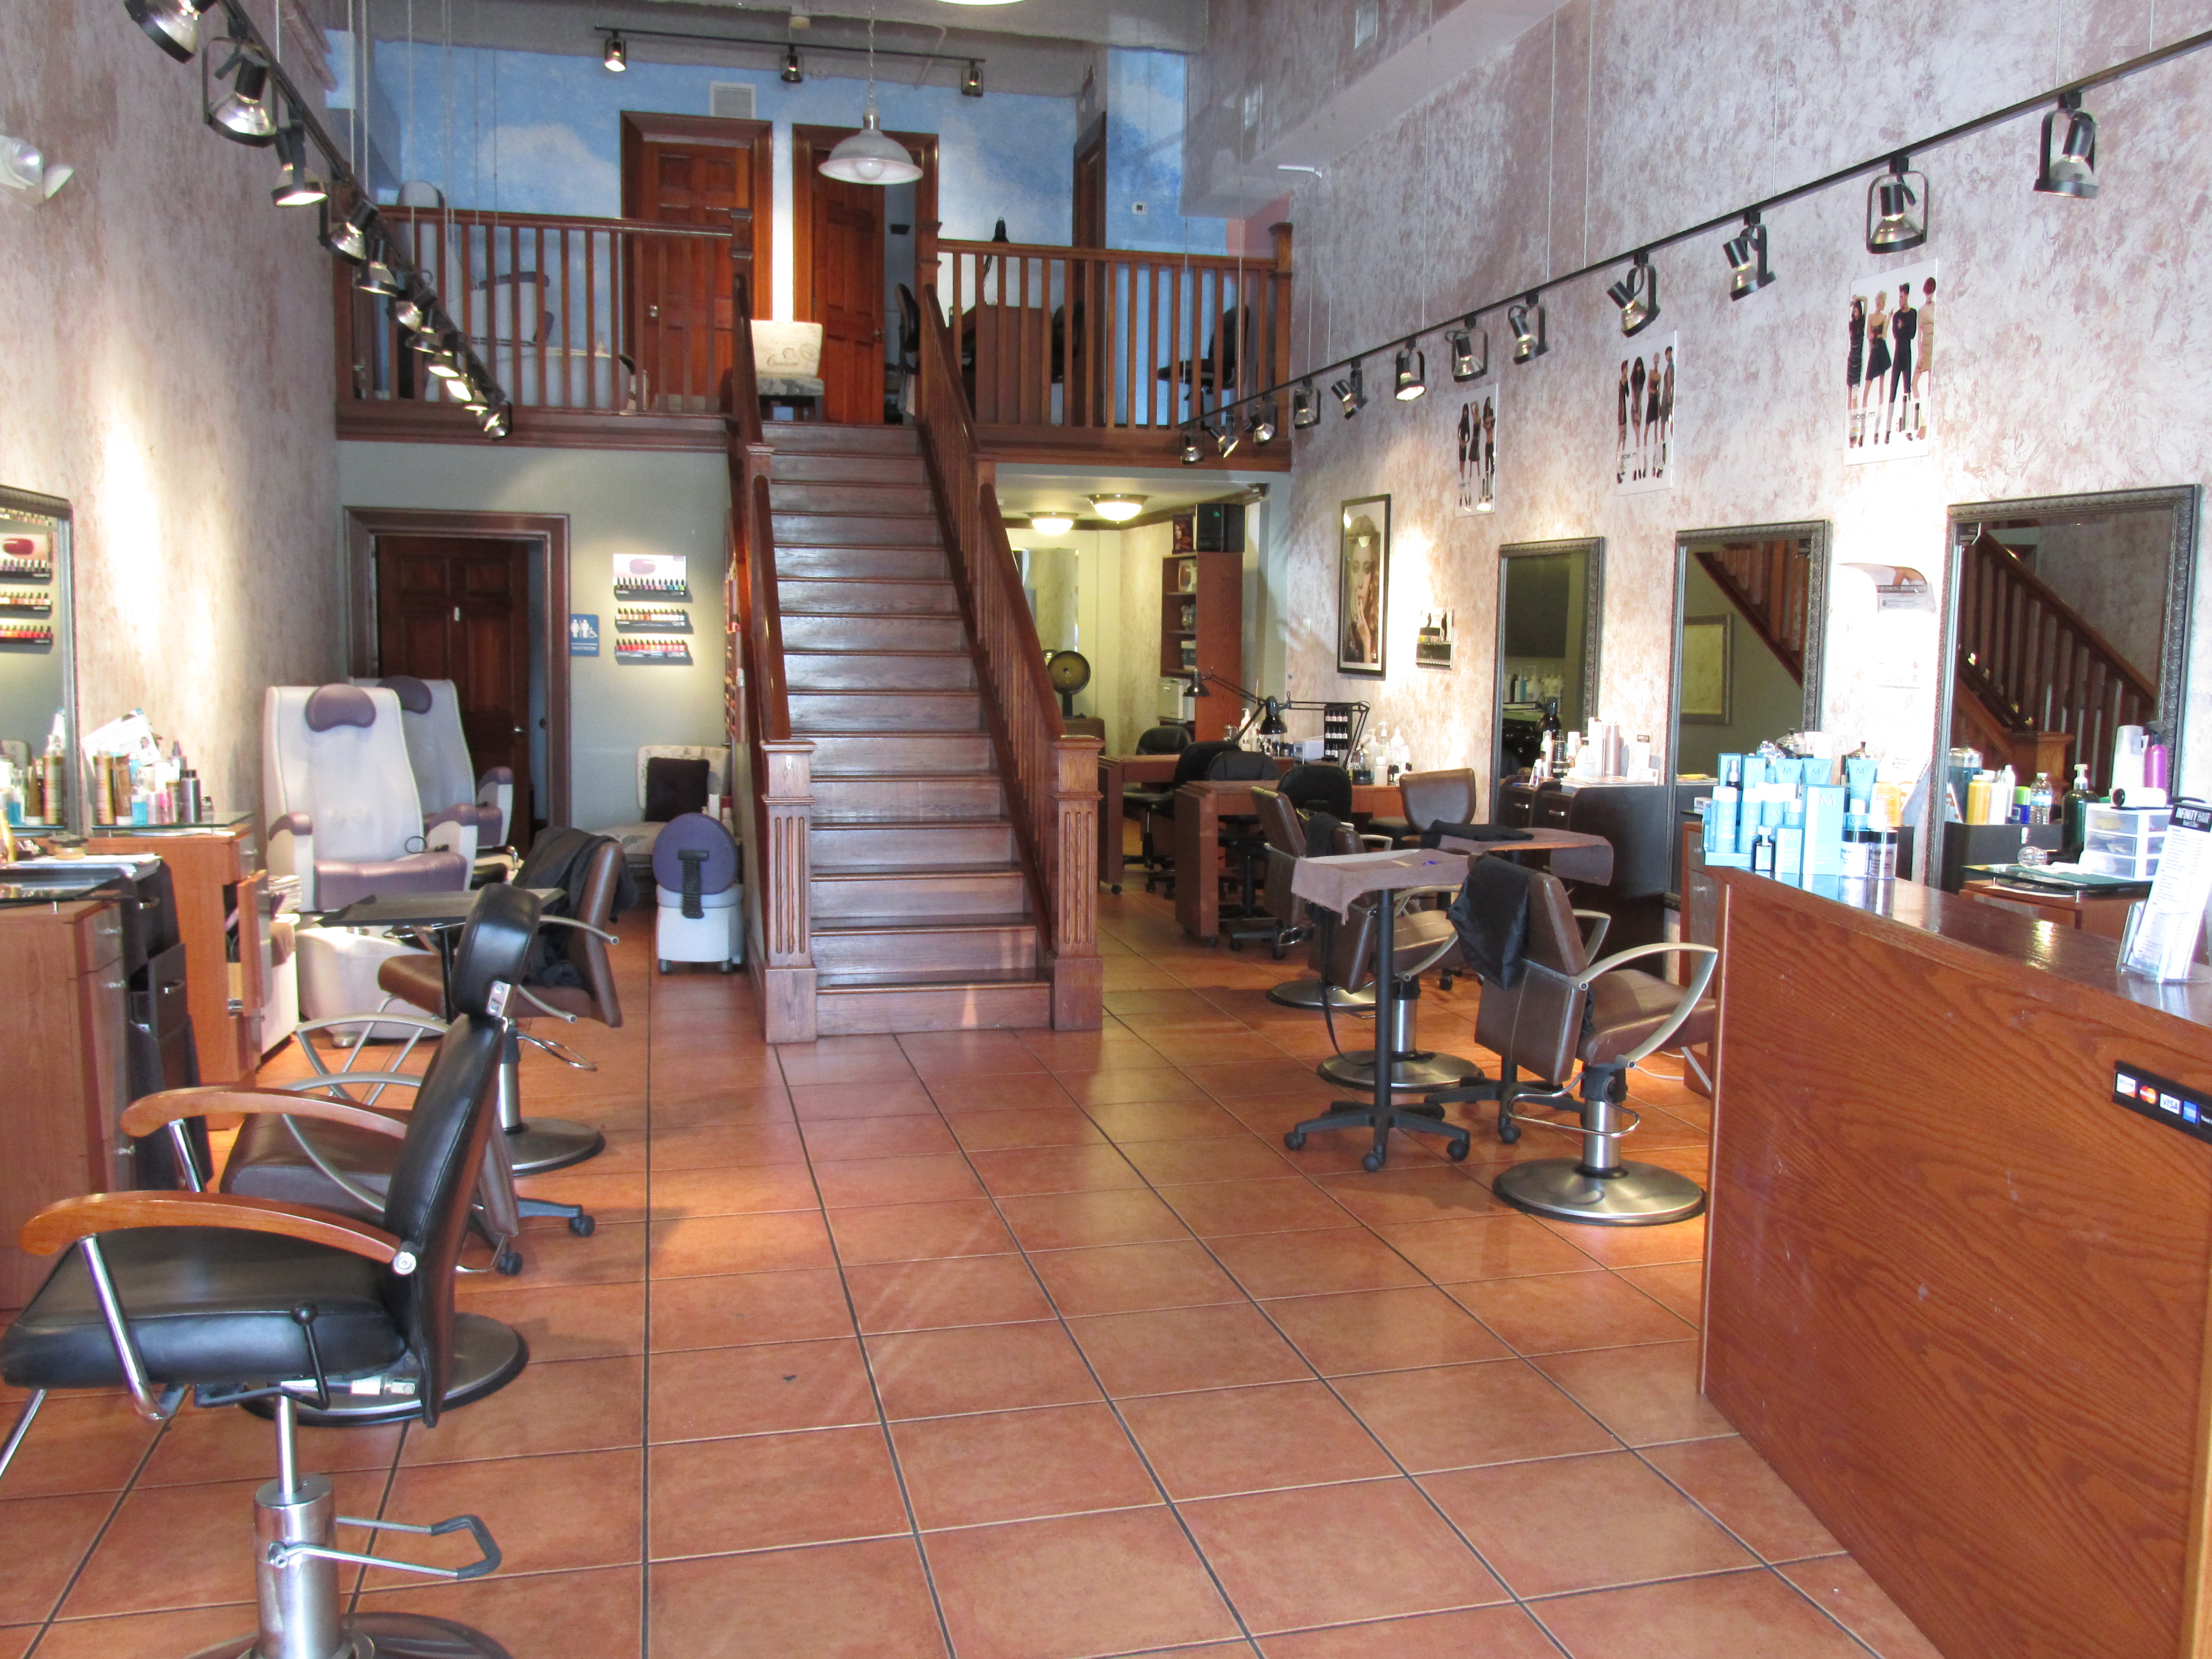 A1 Beauty Salon Key West Of Infinity Hair Nails Skin And Massage Key West Our Keys